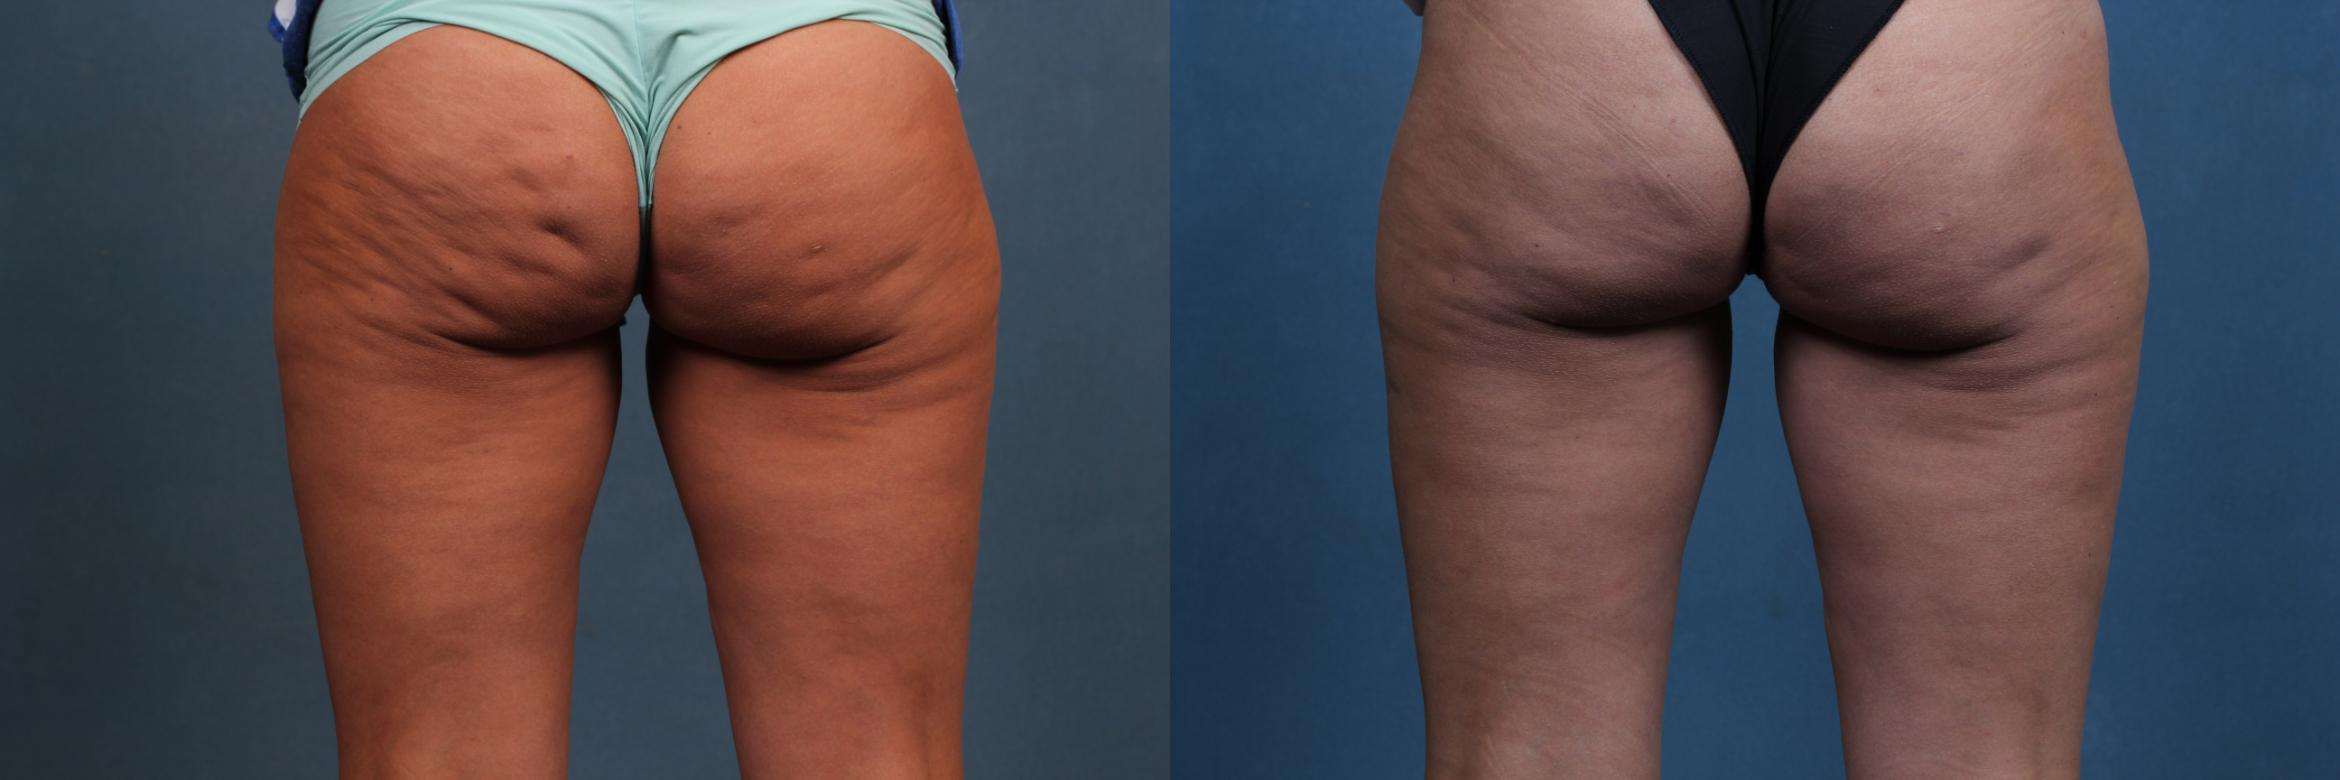 Cellulite Treatments Case 619 Before & After Back | Louisville & Lexington, KY | CaloAesthetics® Plastic Surgery Center